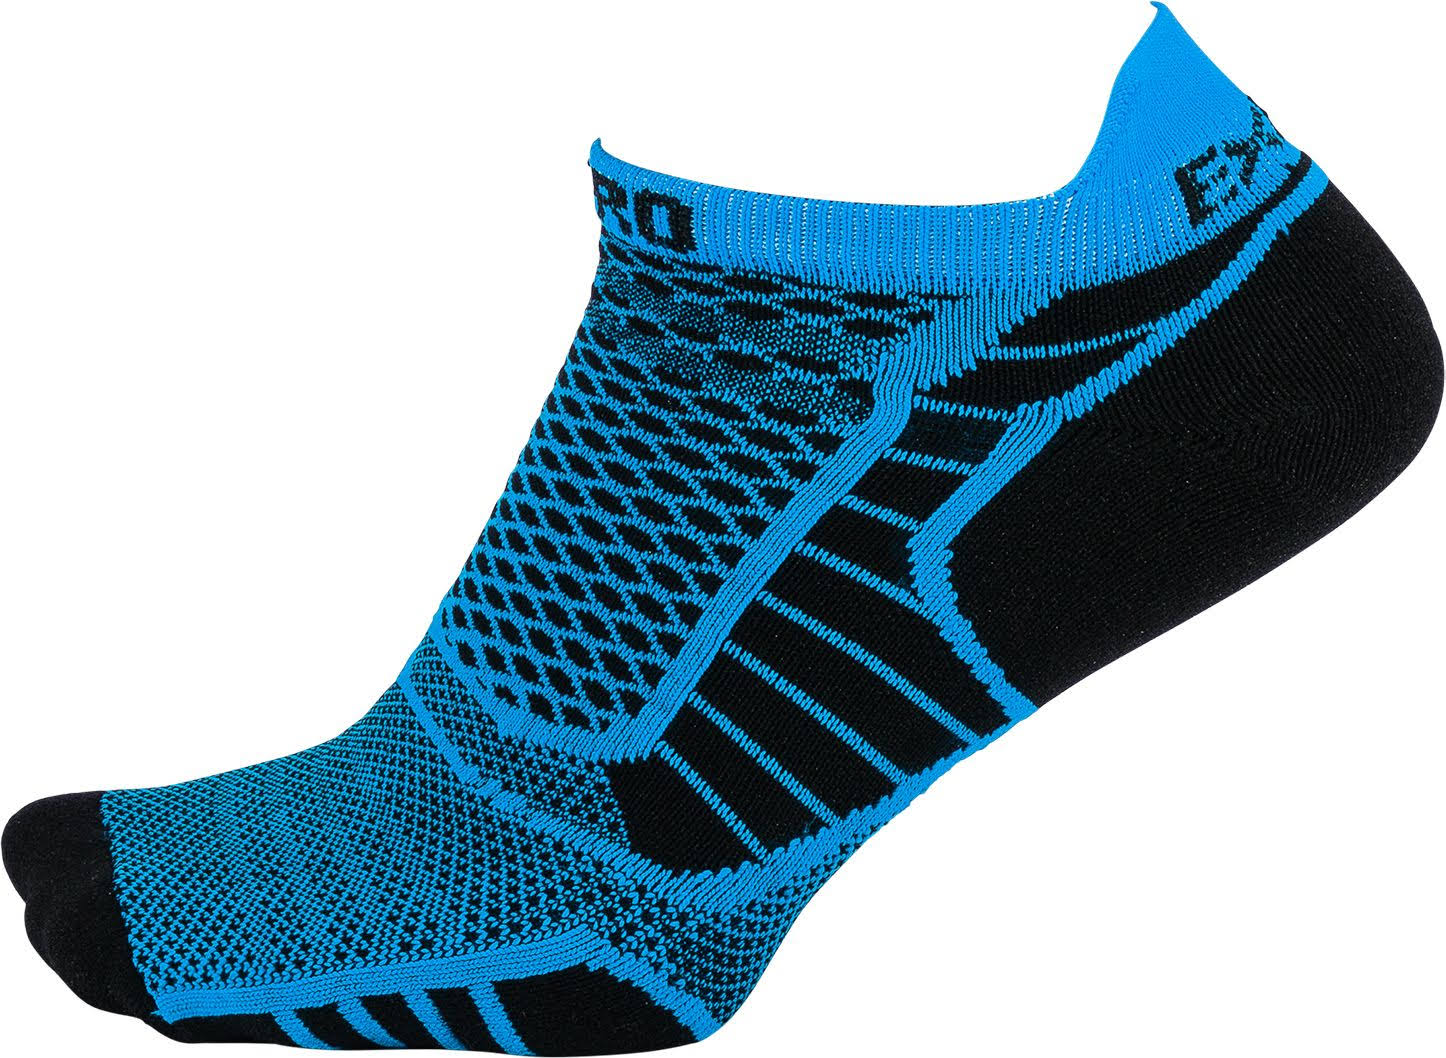 Thorlos Experia Prolite No-Show Tab Socks - Medium, Blue Aster/Black